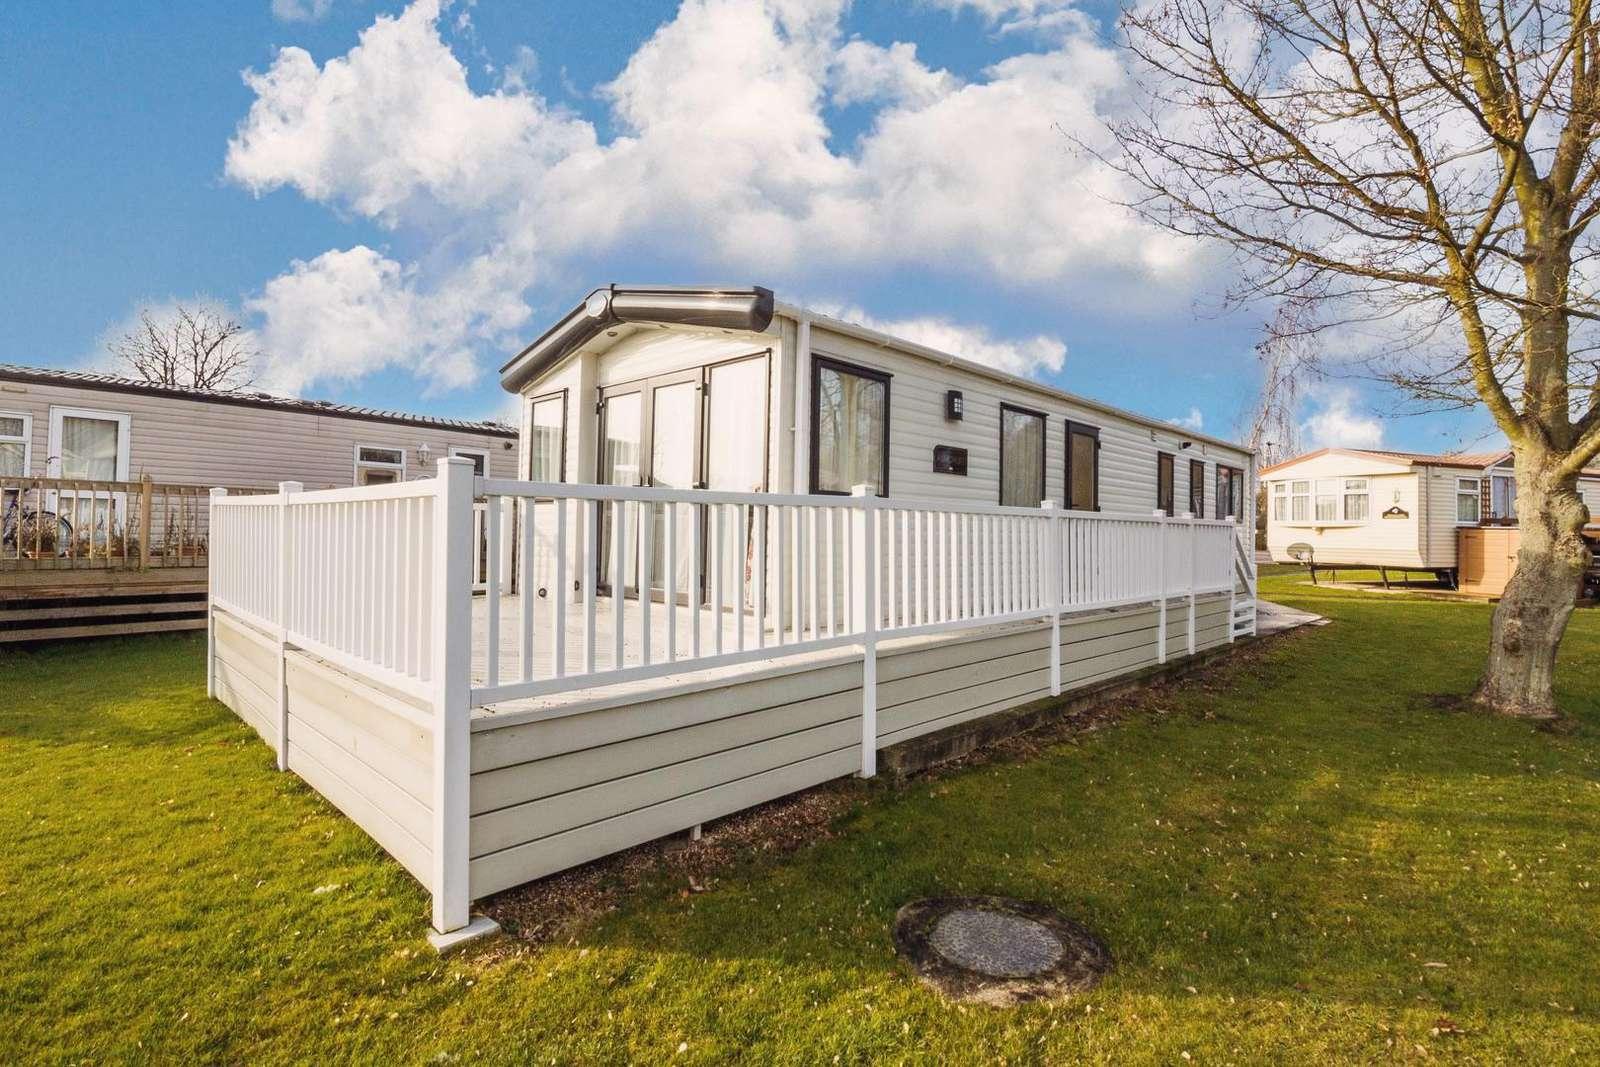 Carlton Meres Holiday Park accommodation for hire